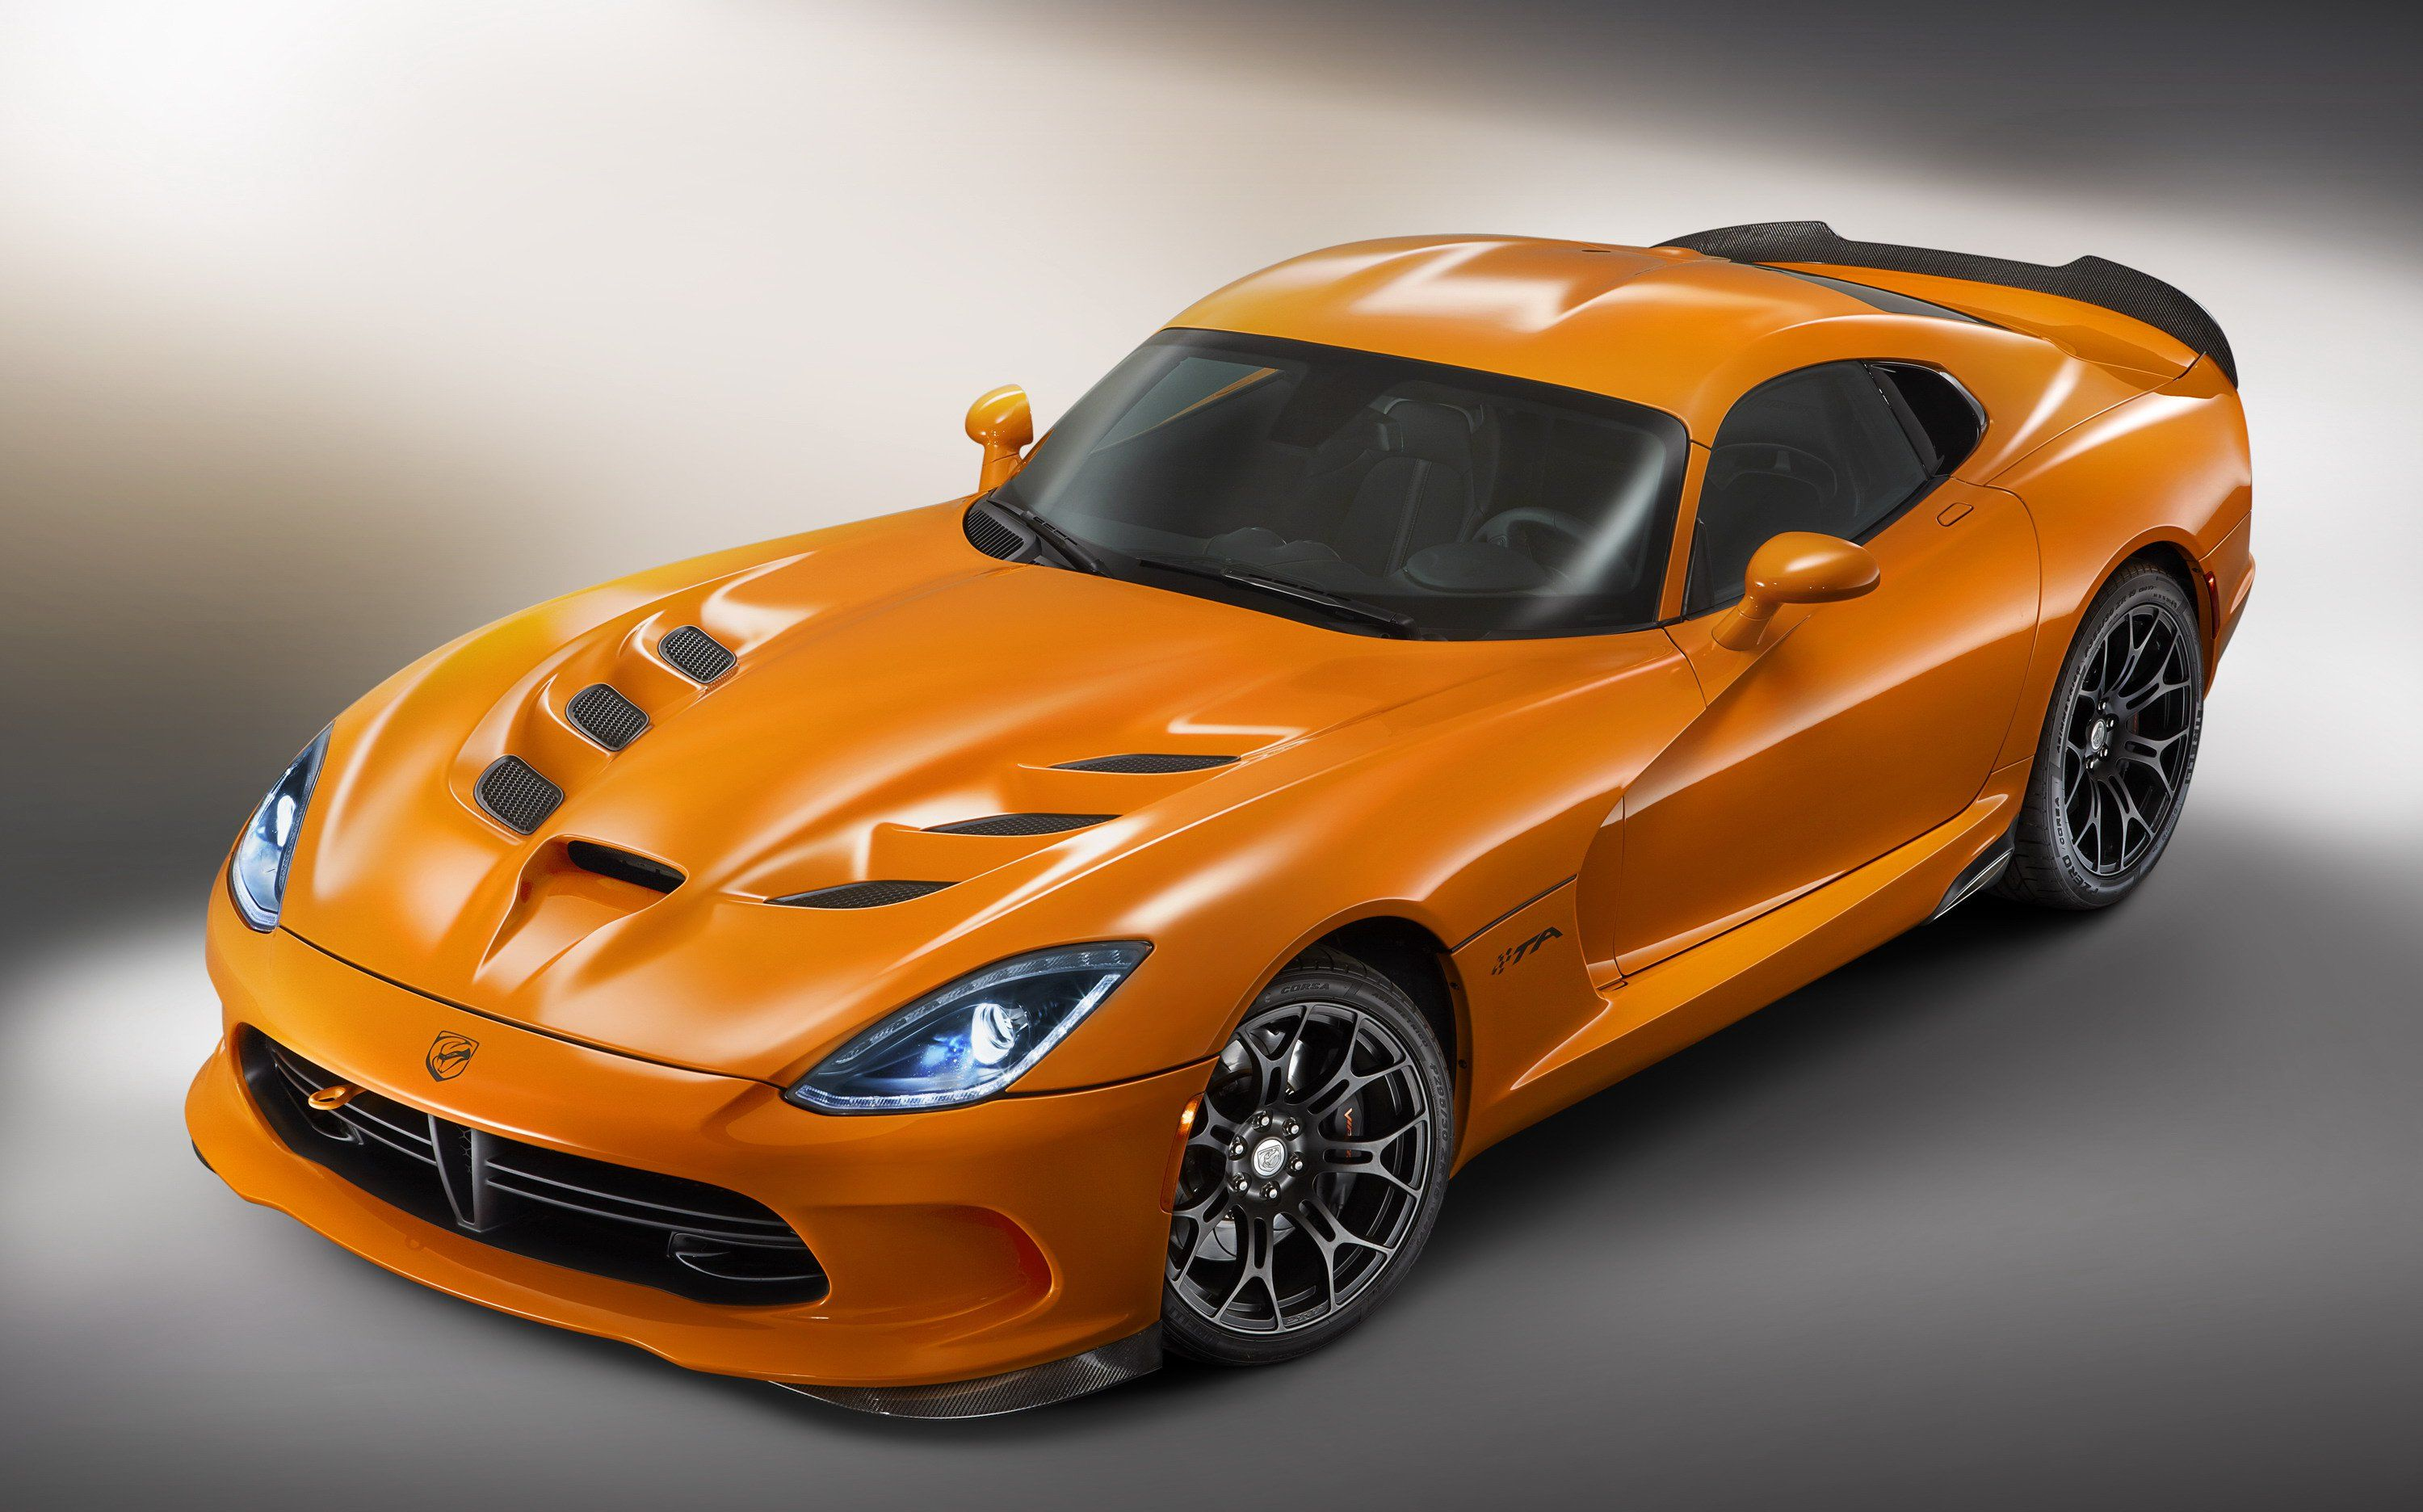 2020 Dodge Viper Acr Cakhd Cakhd Dodge Viper Sports Cars Luxury Sports Cars